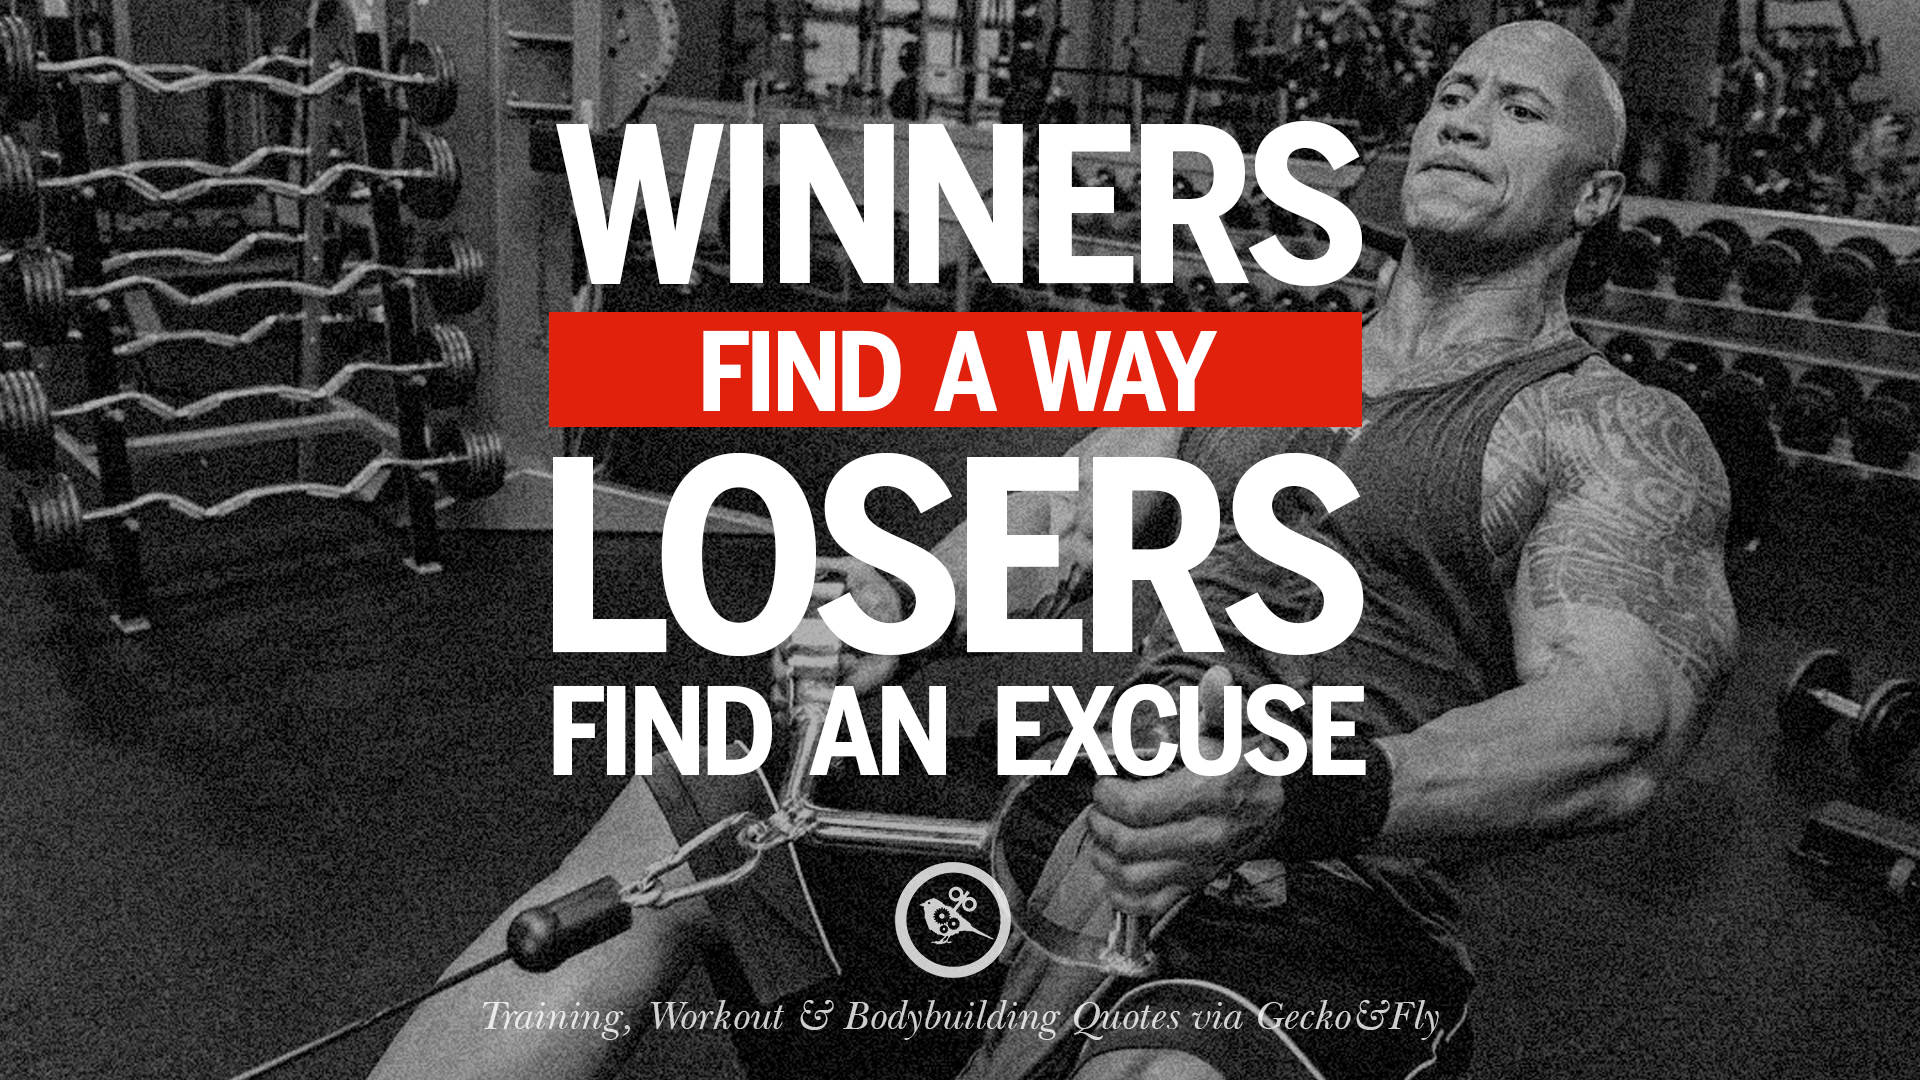 Hard Work Quotes Wallpapers Hd 10 Muscle Boosting Quotes For Workout Amp Bodybuilding Gains